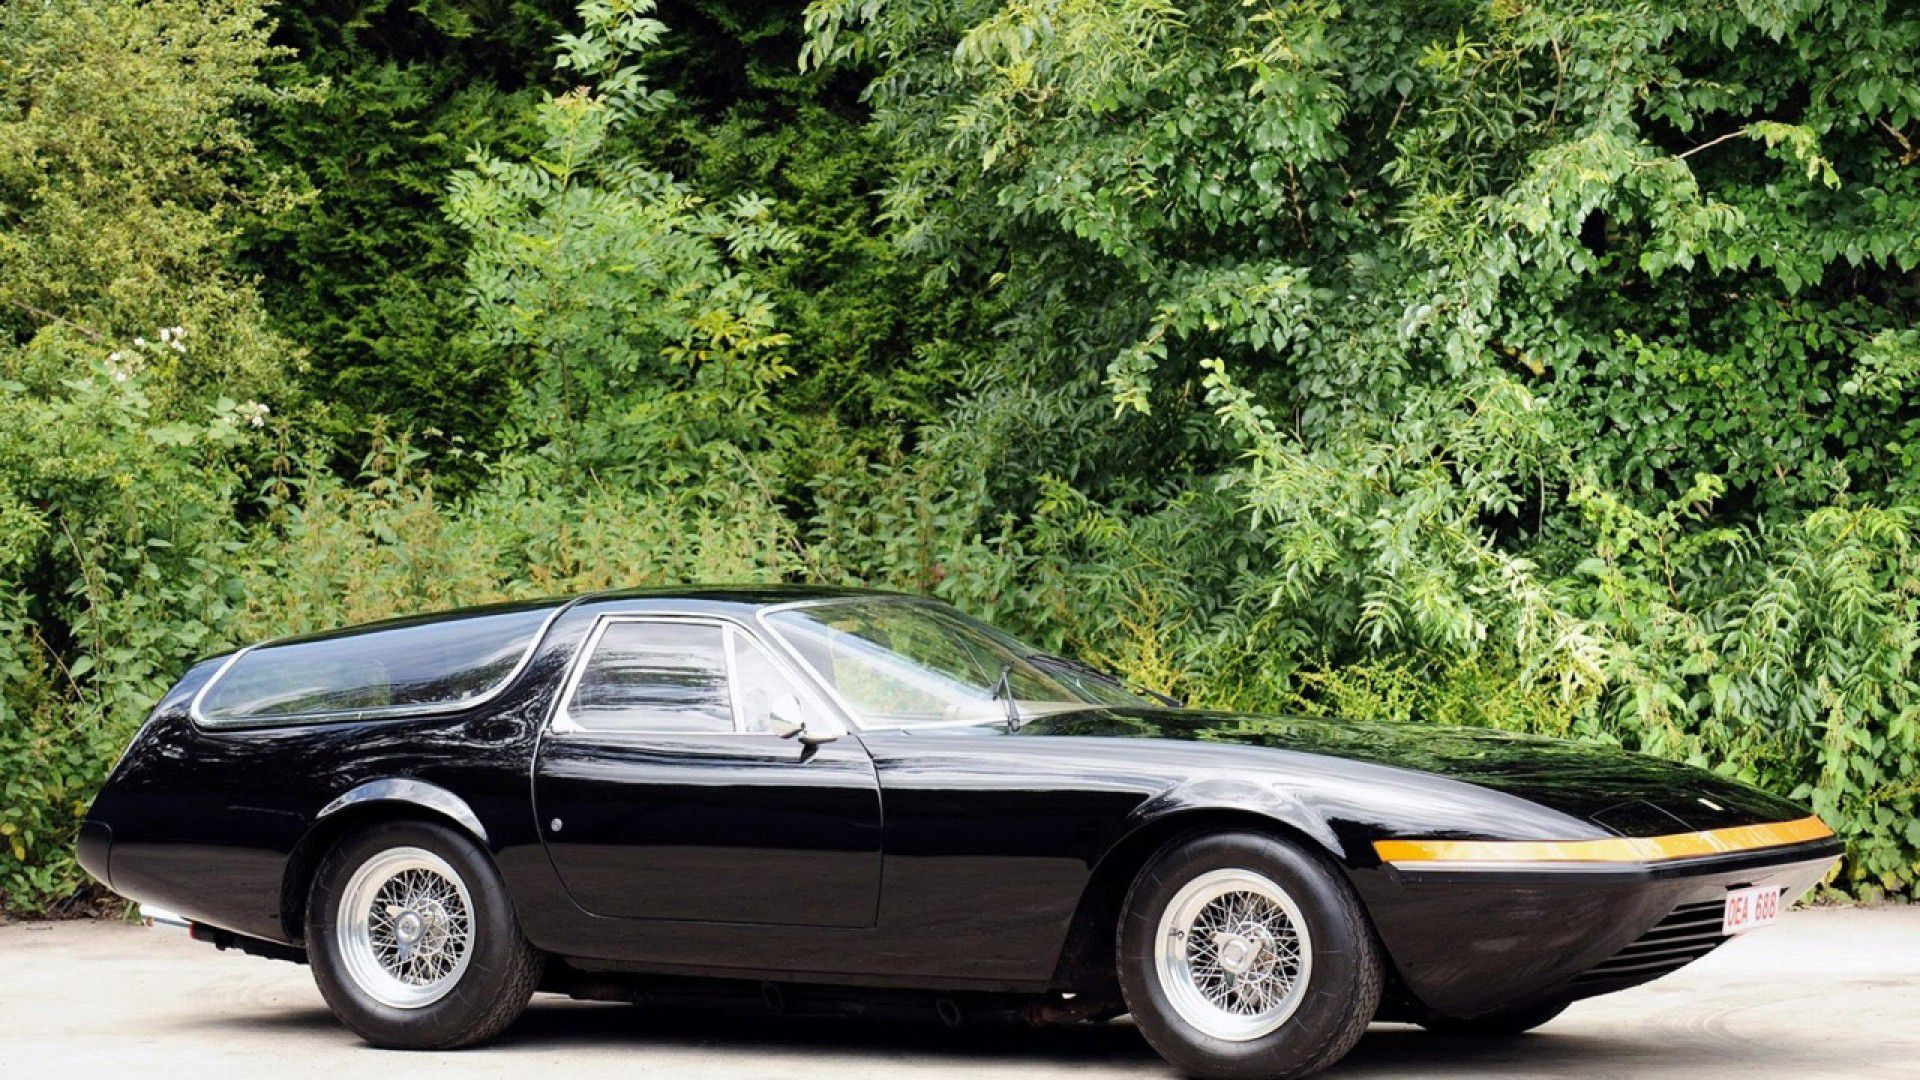 Ferrari 365 GTB/4 Shooting Break